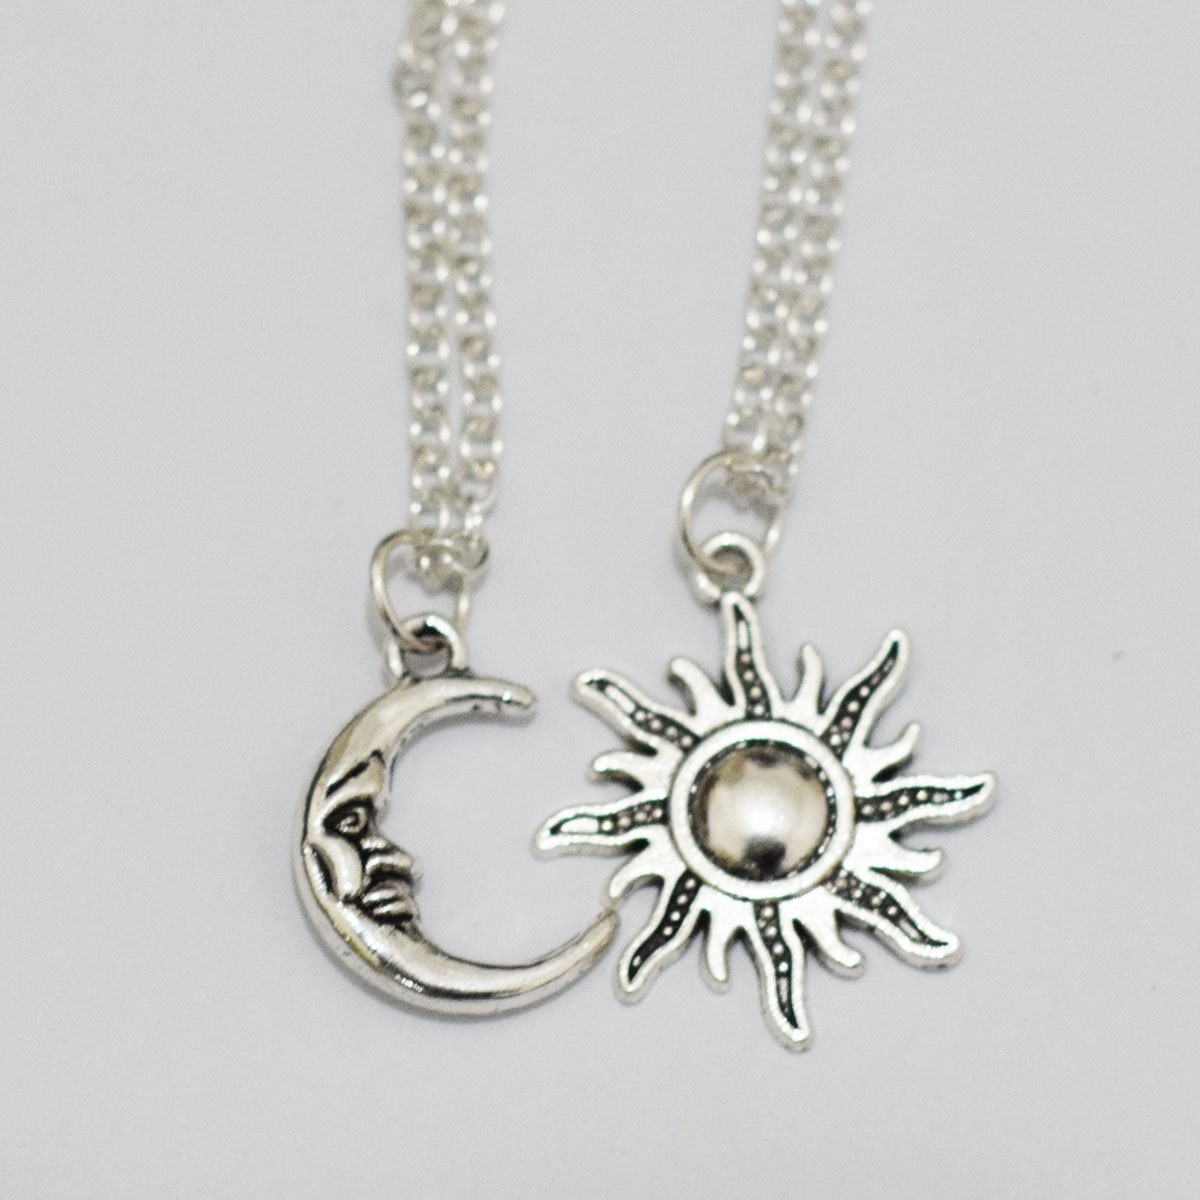 Amazon sun and moon friendship necklaces bff jewelry arts amazon sun and moon friendship necklaces bff jewelry arts crafts sewing mozeypictures Gallery